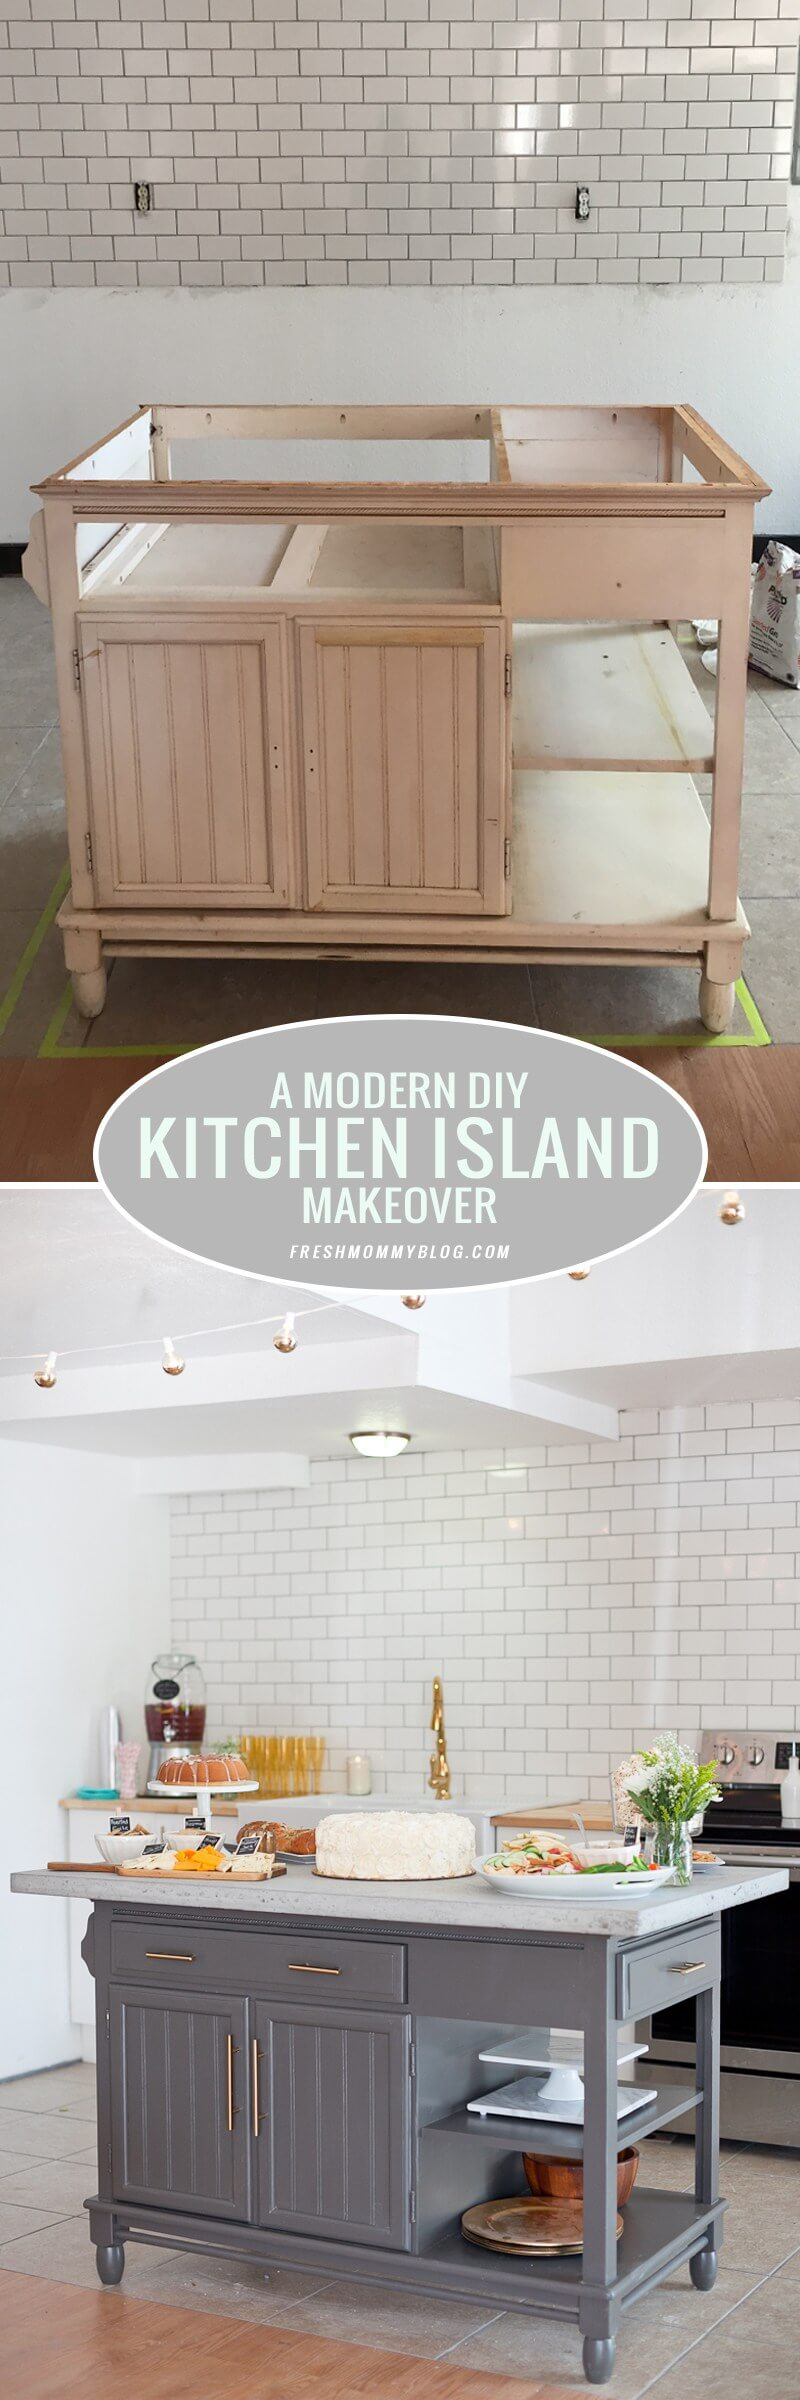 23 Best Diy Kitchen Island Ideas And Designs For 2019